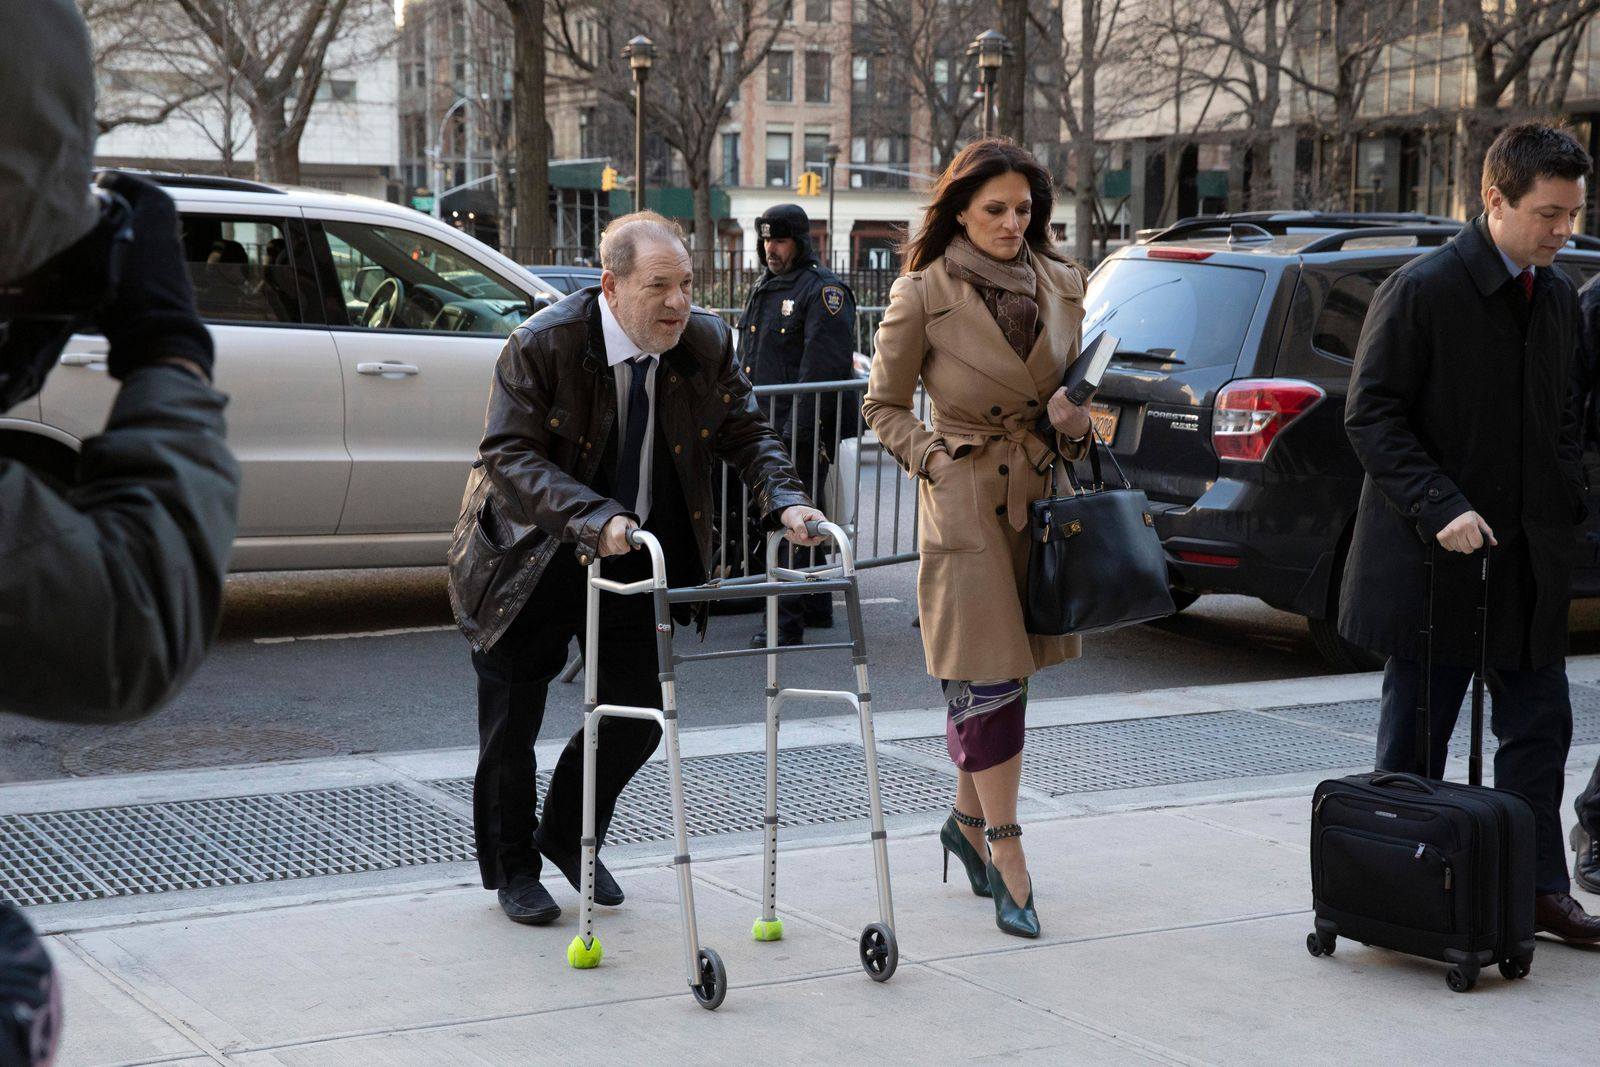 Harvey Weinstein and his attorney Donna Rotunno arrive at a Manhattan courthouse to attend jury selection for his trial on rape and sexual assault charges, Friday, Jan. 17, 2020 in New York. (AP Photo/Mark Lennihan)